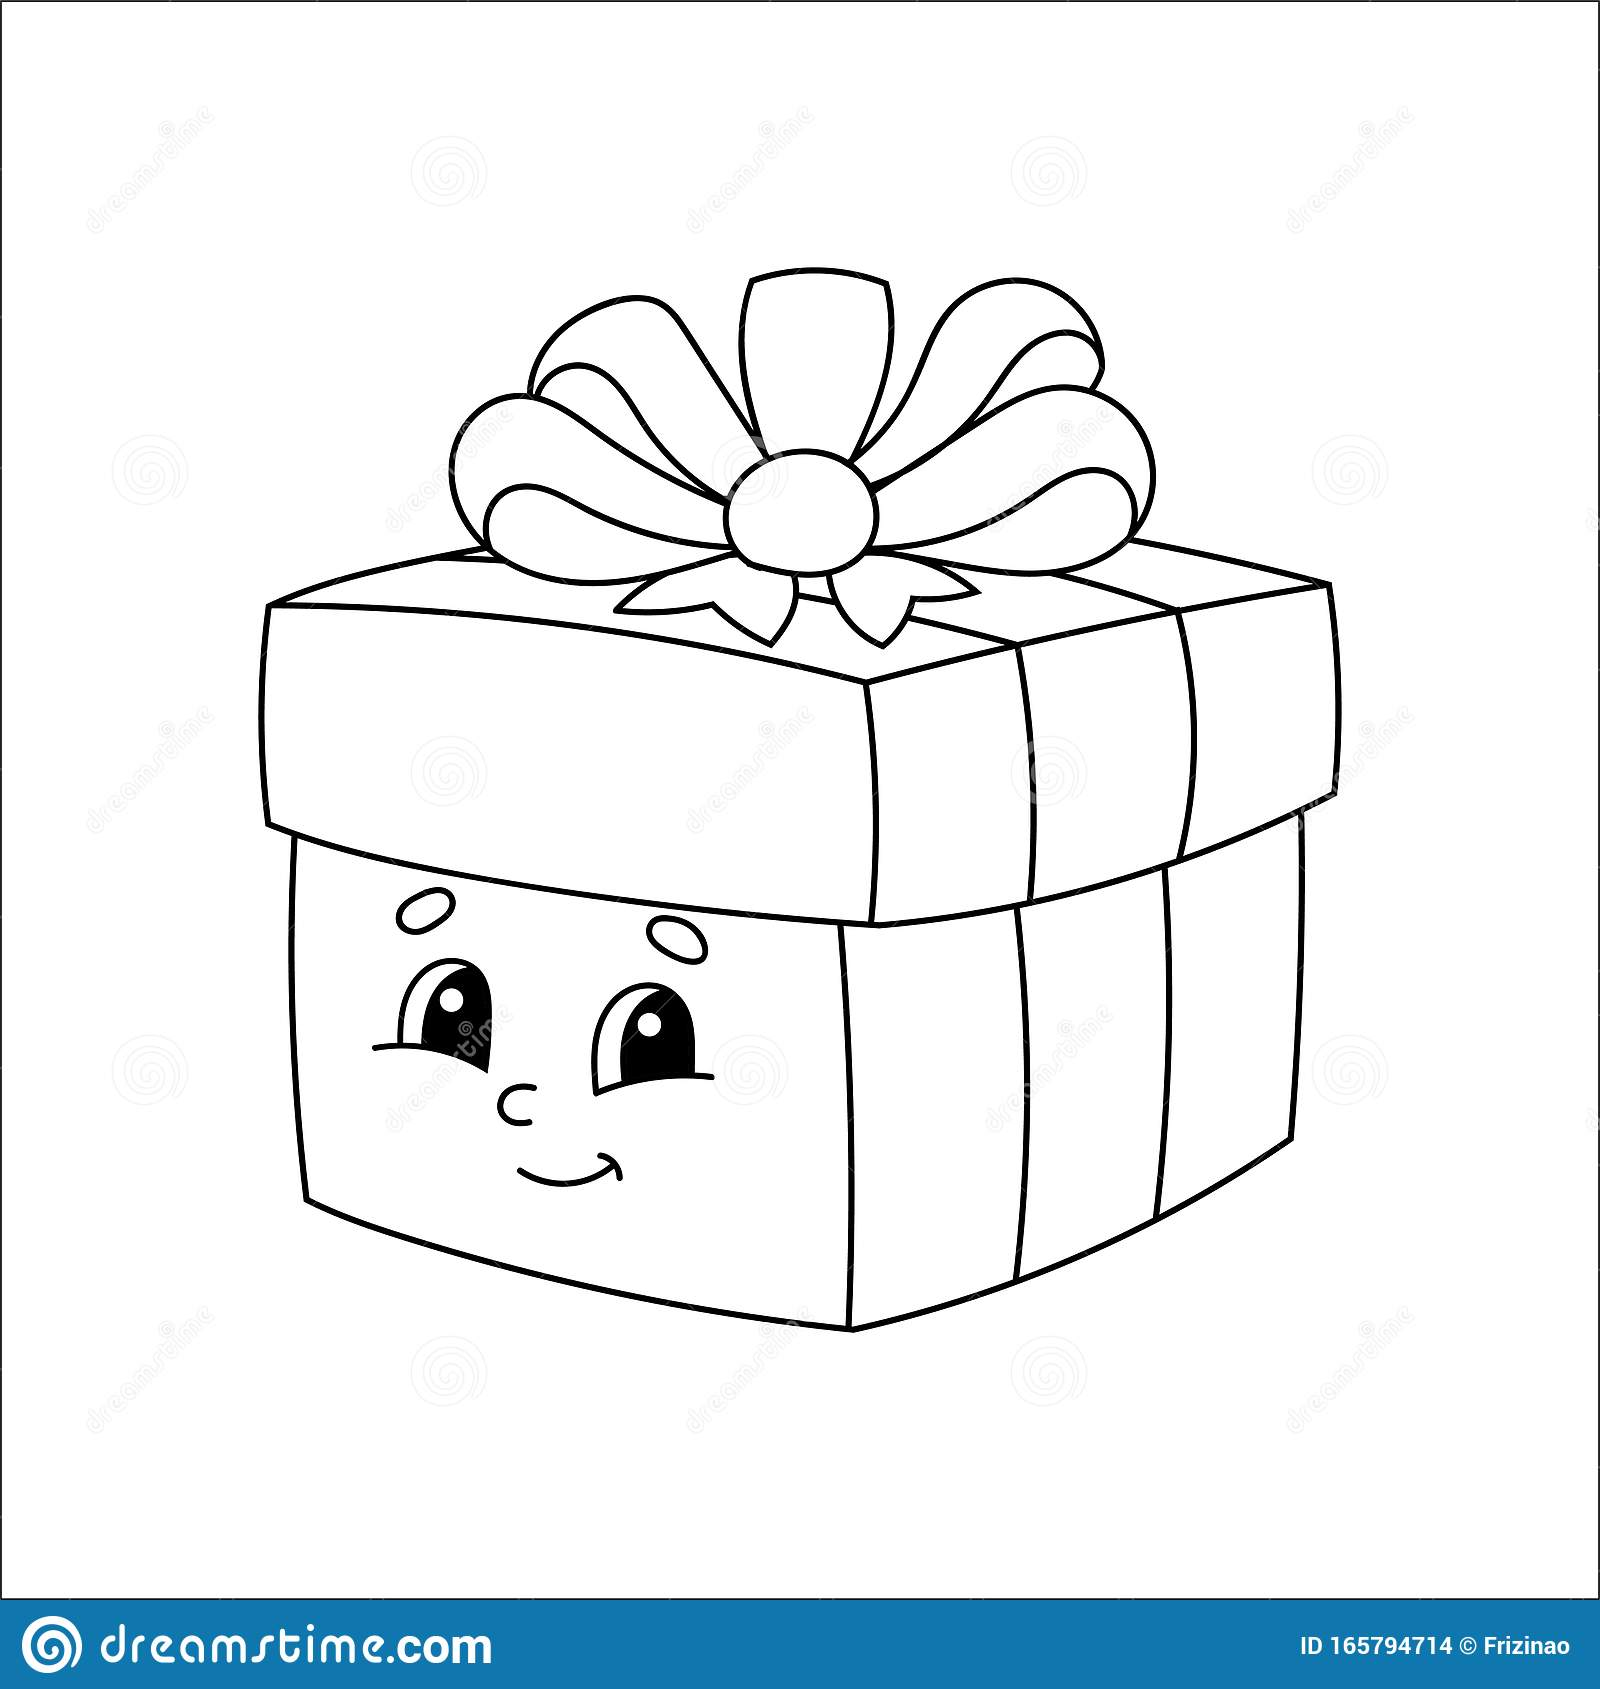 Gift Box Coloring Book For Kids Cheerful Character Vector Illustration Cute Cartoon Style Fantasy Page For Children Black Stock Vector Illustration Of Cheerful Cartoon 165794714